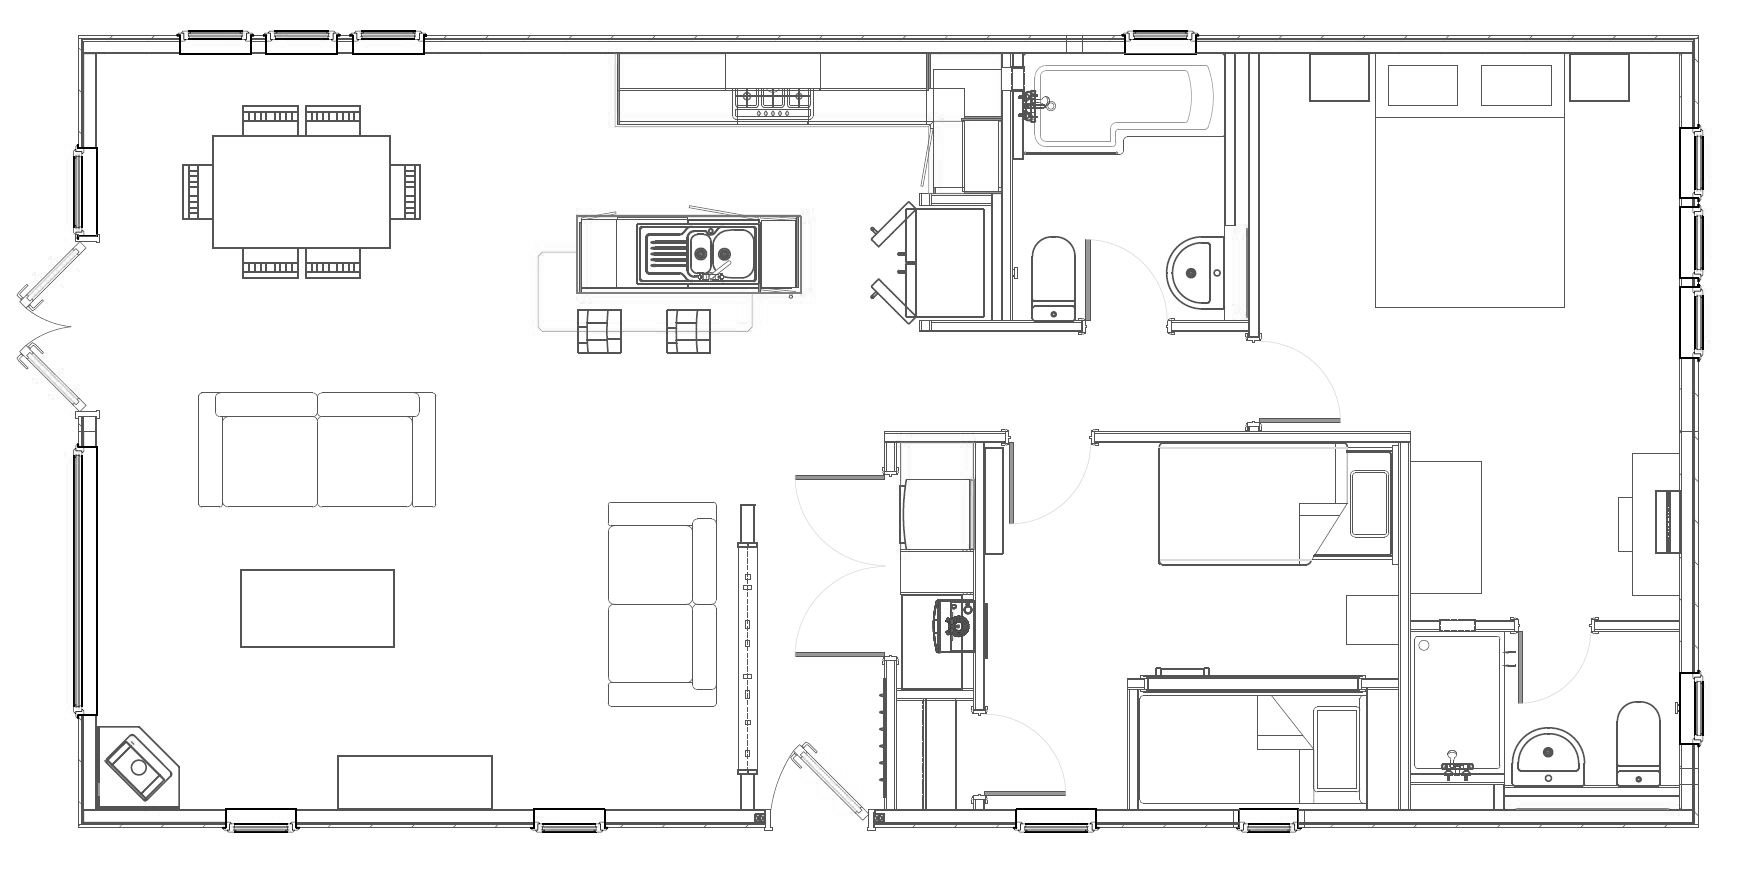 2 Bed Casa Di Lusso Lodge Floorplan